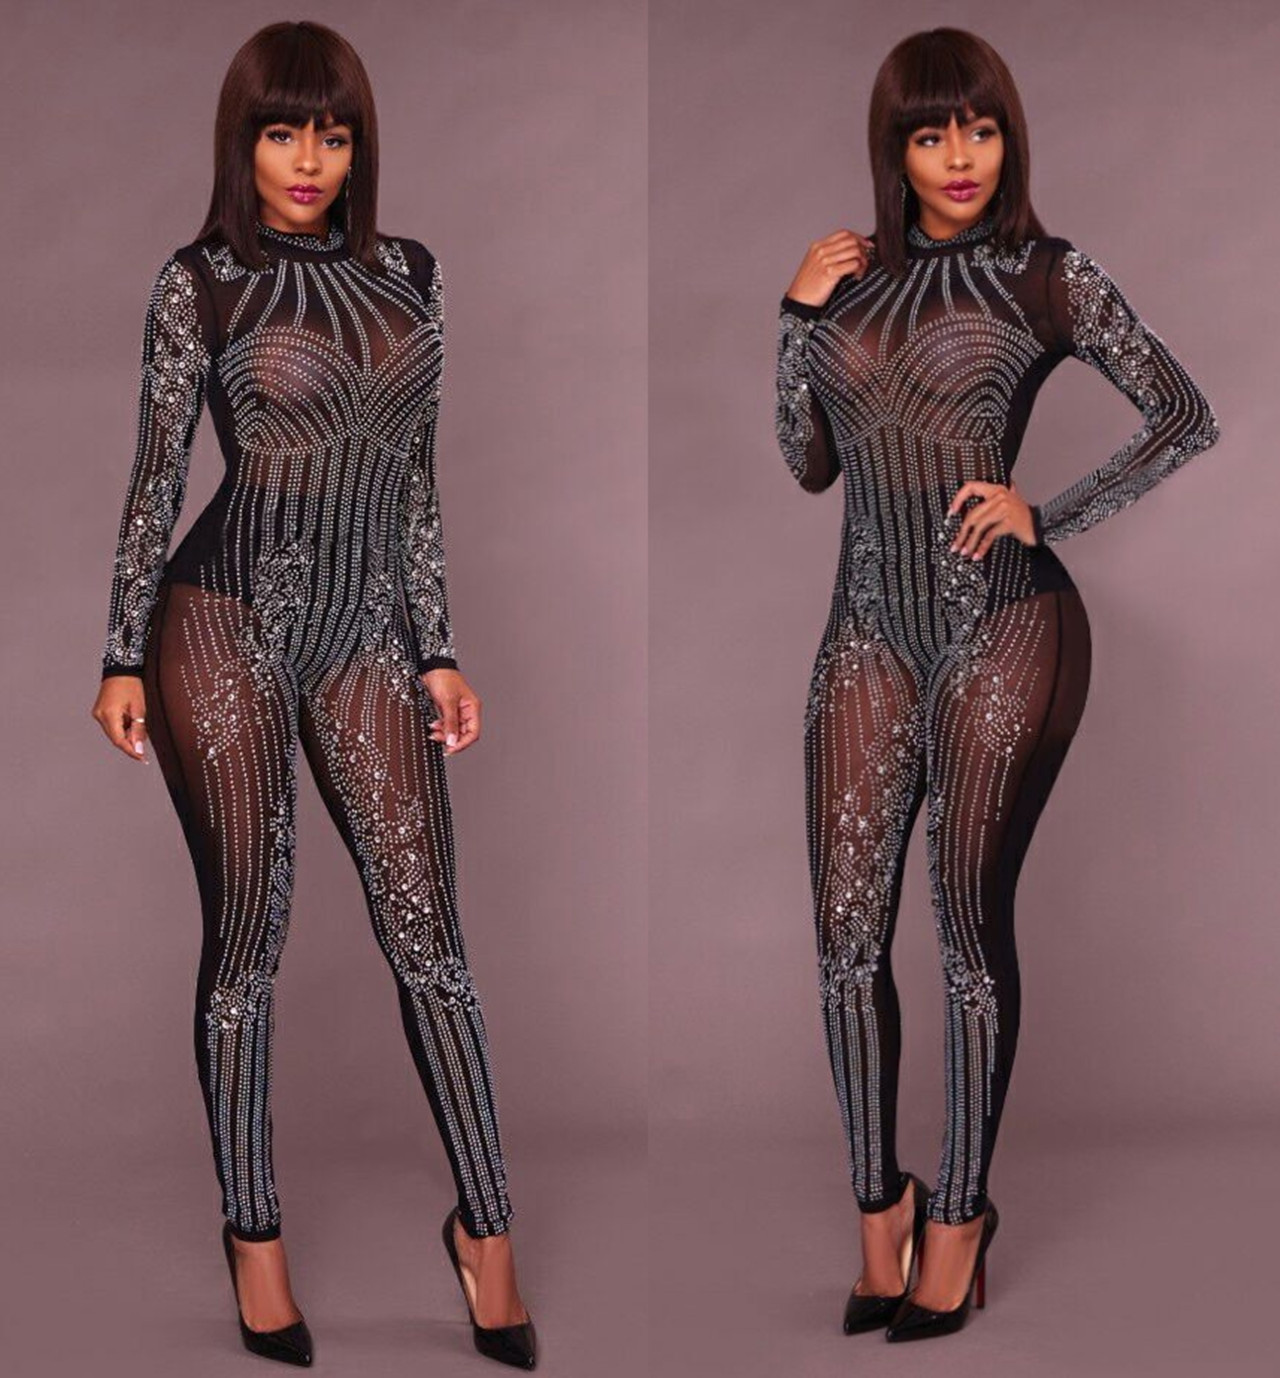 5c583c7be49f 2018 Sexy Women Paillette Bodysuit Sequined Bodycon Clubwear Jumpsuits-in  Jumpsuits from Women s Clothing on Aliexpress.com